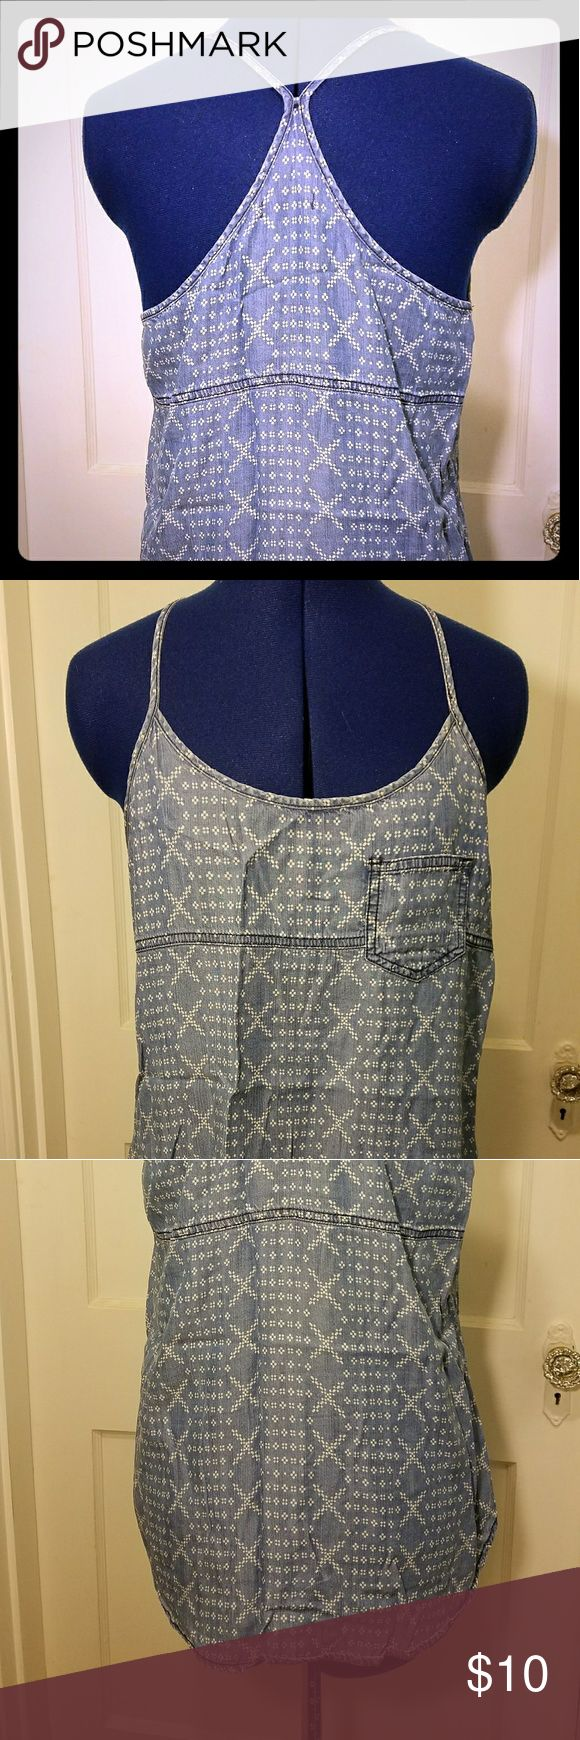 Maurices You've Got Me In Stitches Tank Ready for summer music festivals, this strappy tank has a very flowing form. A faux cross stitch patter gives the appearance of flowers. The synthetic fabric sort of looks and feels like jeans but it's light and flowy. 60% Lyocell, 40% viscose Maurices Tops Tank Tops